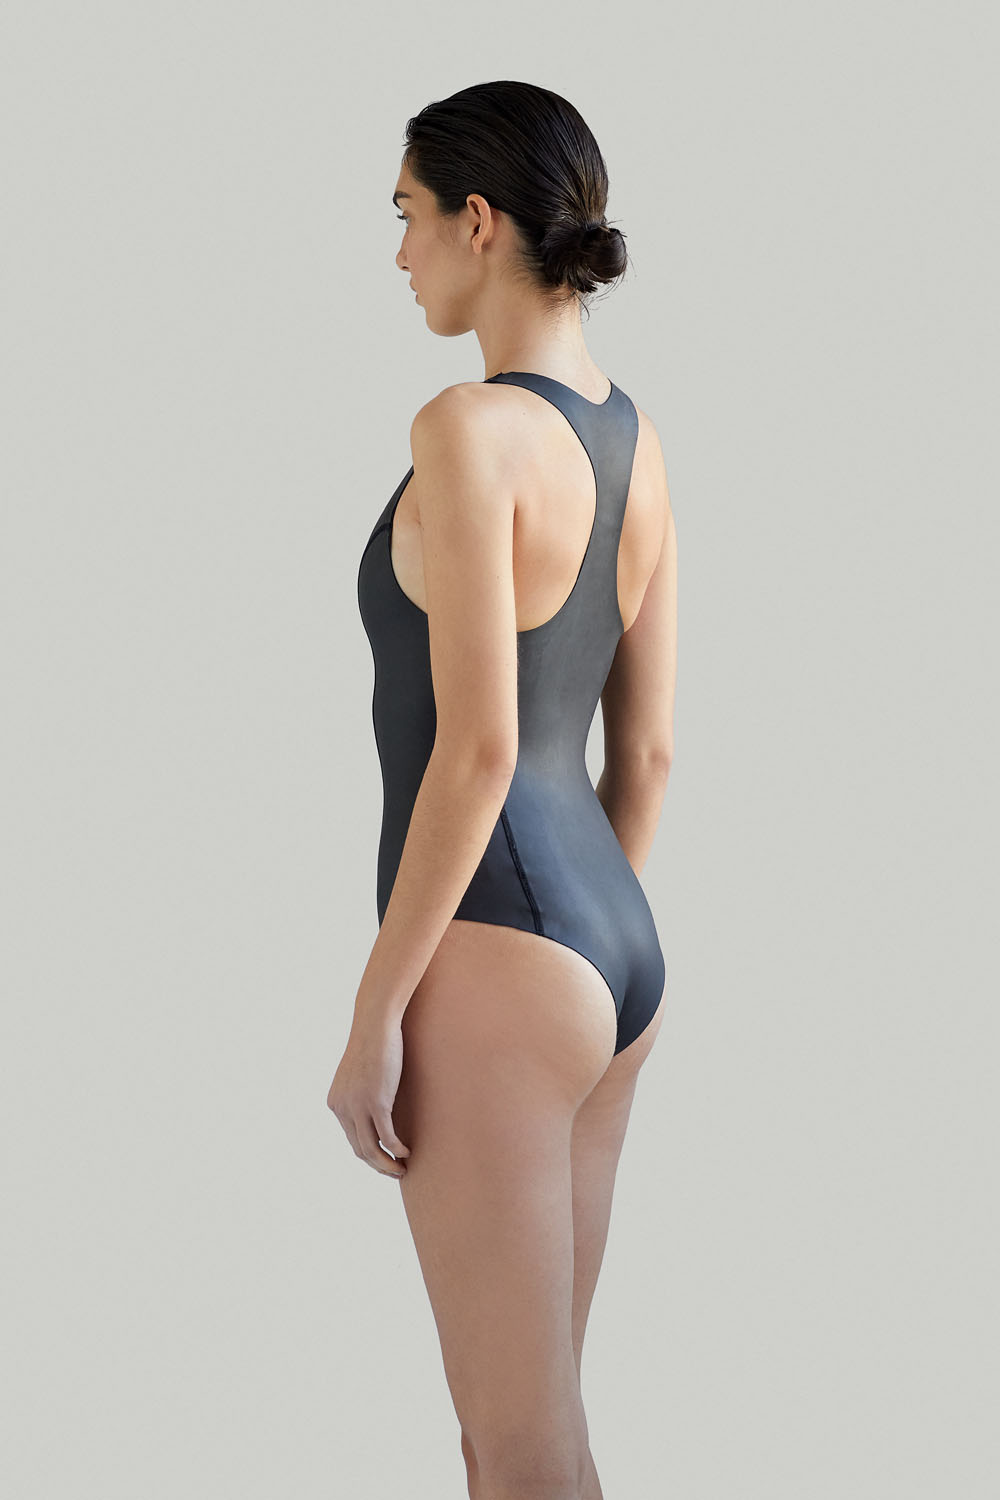 Sustainable Luxury Swimwear / Ropa de baño sostenible, neoprene wetsuit / bañador neopreno, surf ecoprene. Sylvia by NOW_THEN,